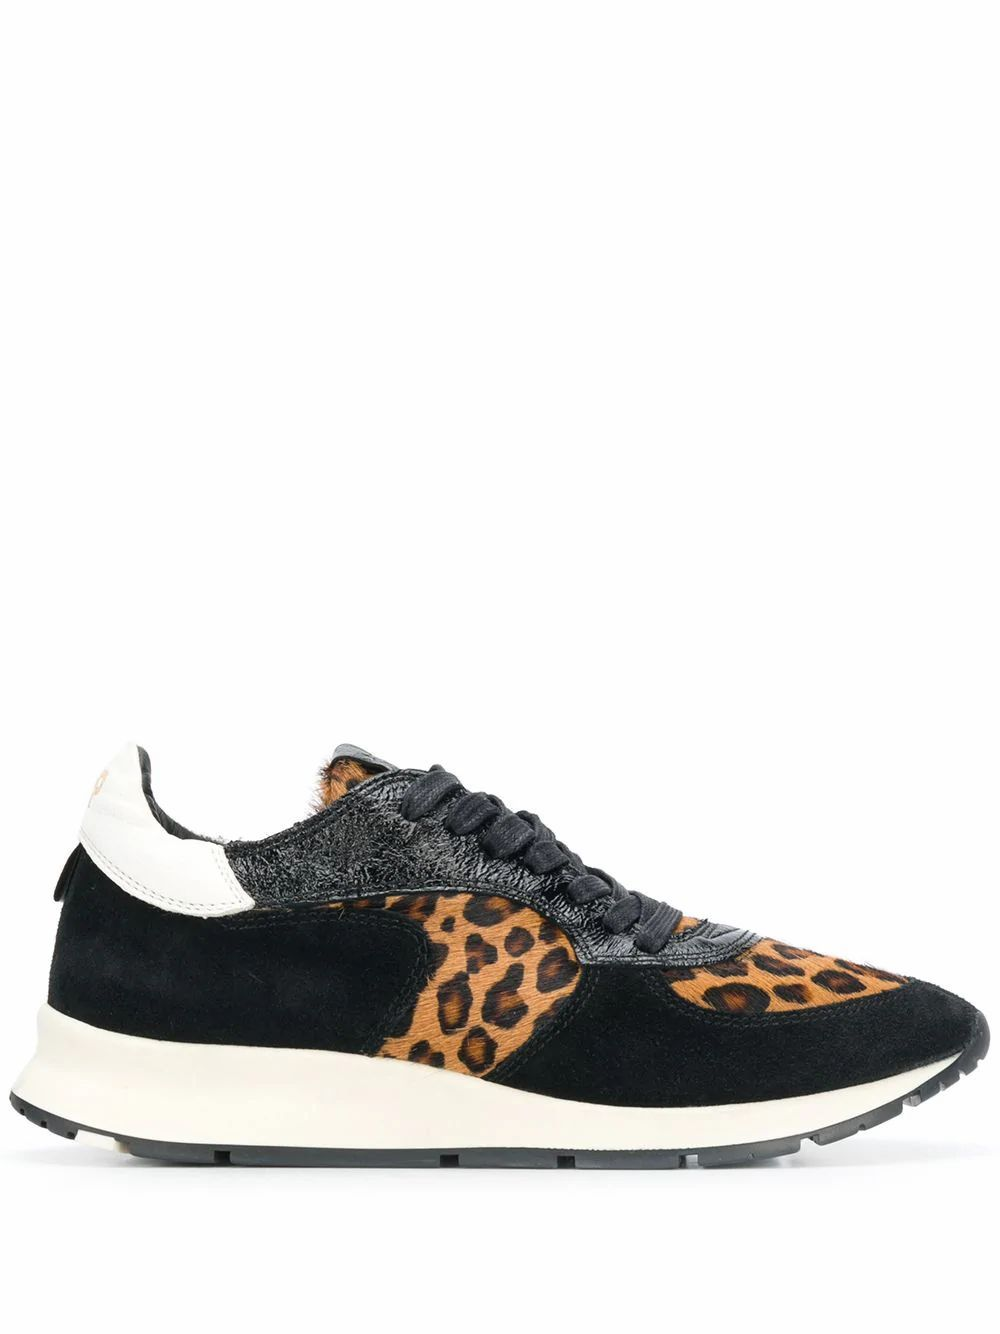 PHILIPPE MODEL WOMEN'S NTLDLE01 MULTICOLOR LEATHER SNEAKERS